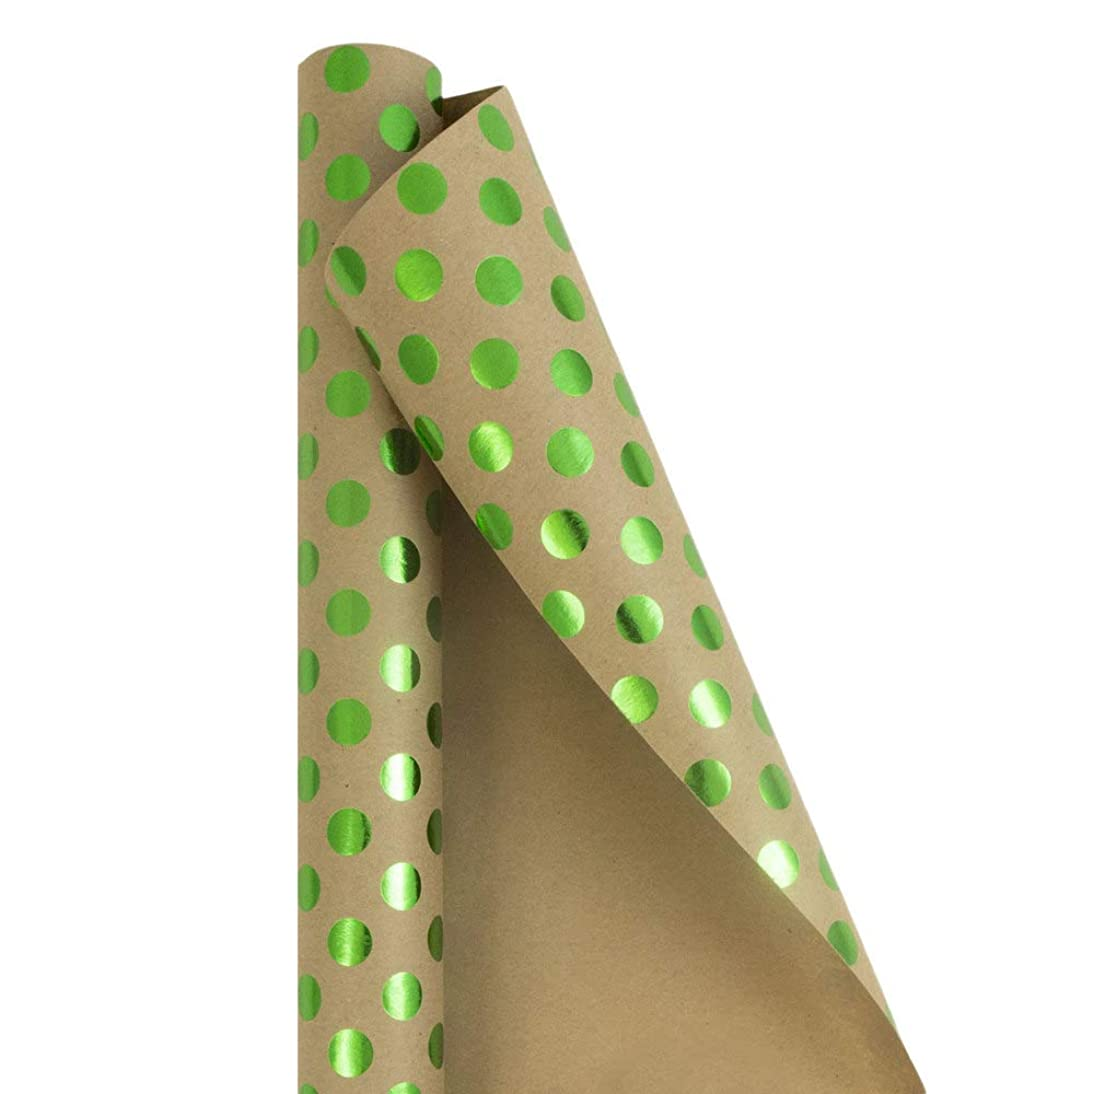 JAM PAPER Gift Wrap - Kraft Wrapping Paper - 25 Sq Ft - Green Foil Polka Dots on Brown Kraft Paper - Roll Sold Individually